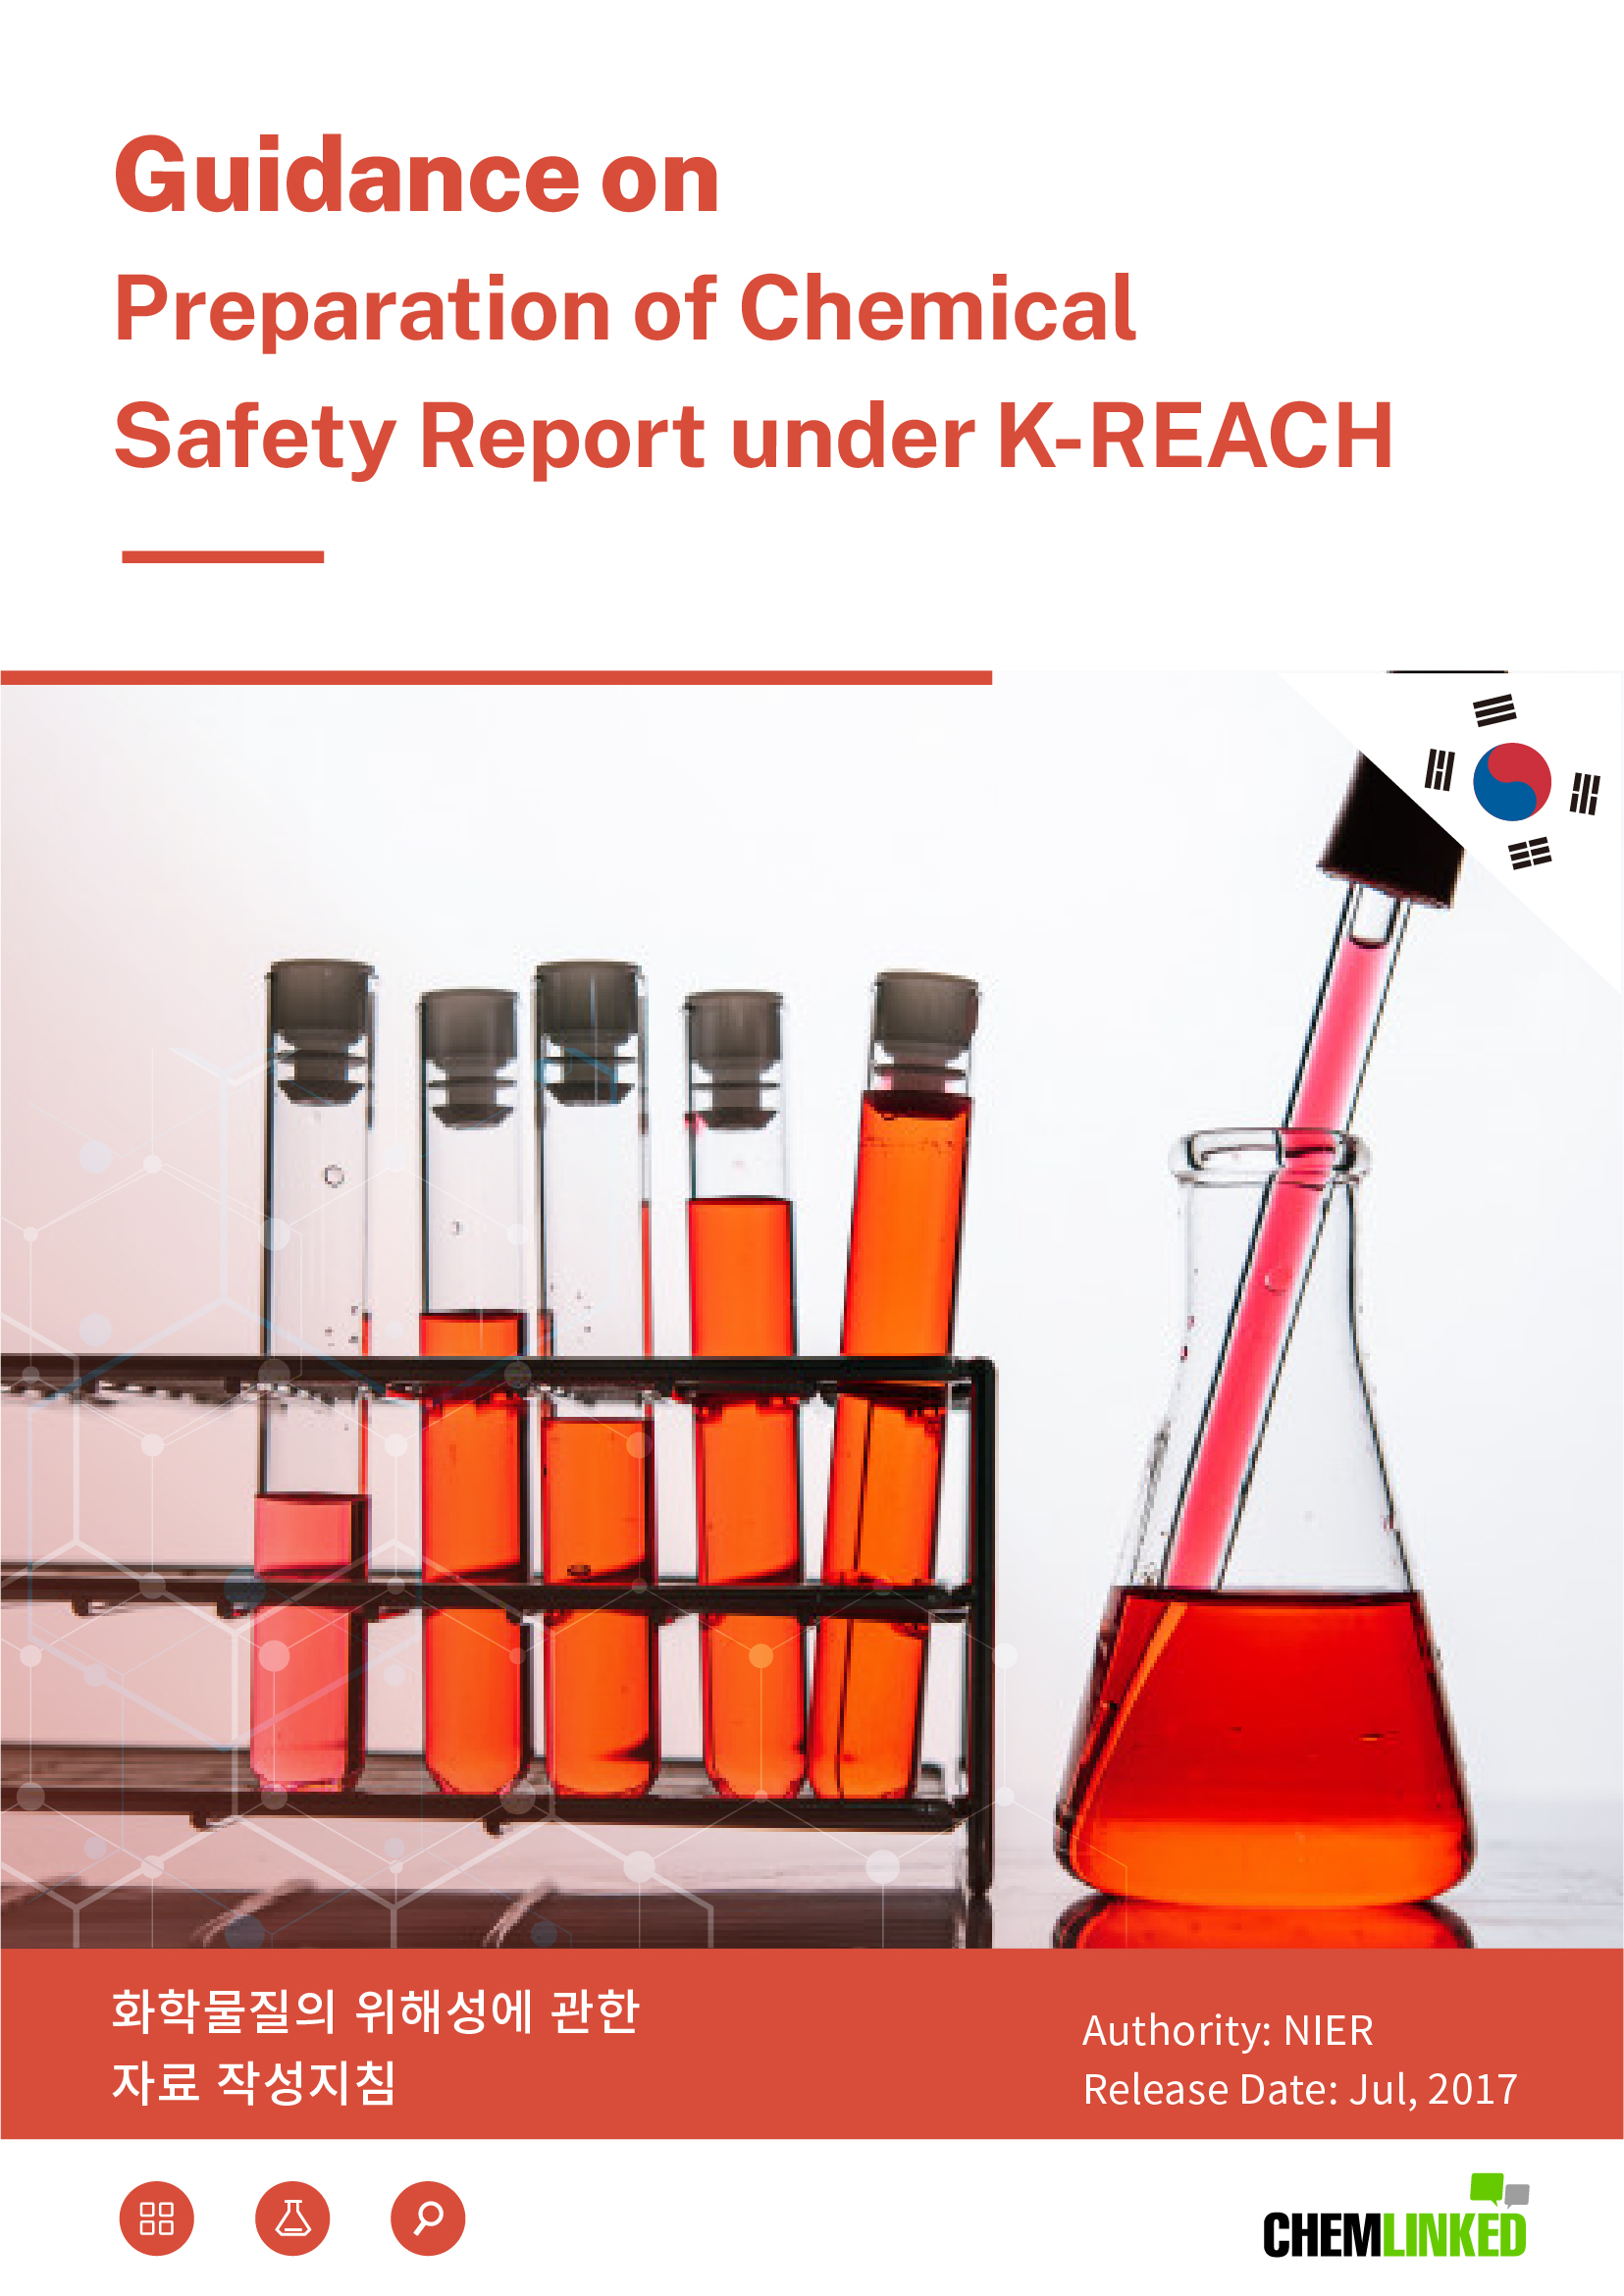 K-REACH: Guidance on Preparation of Chemical Safety Report